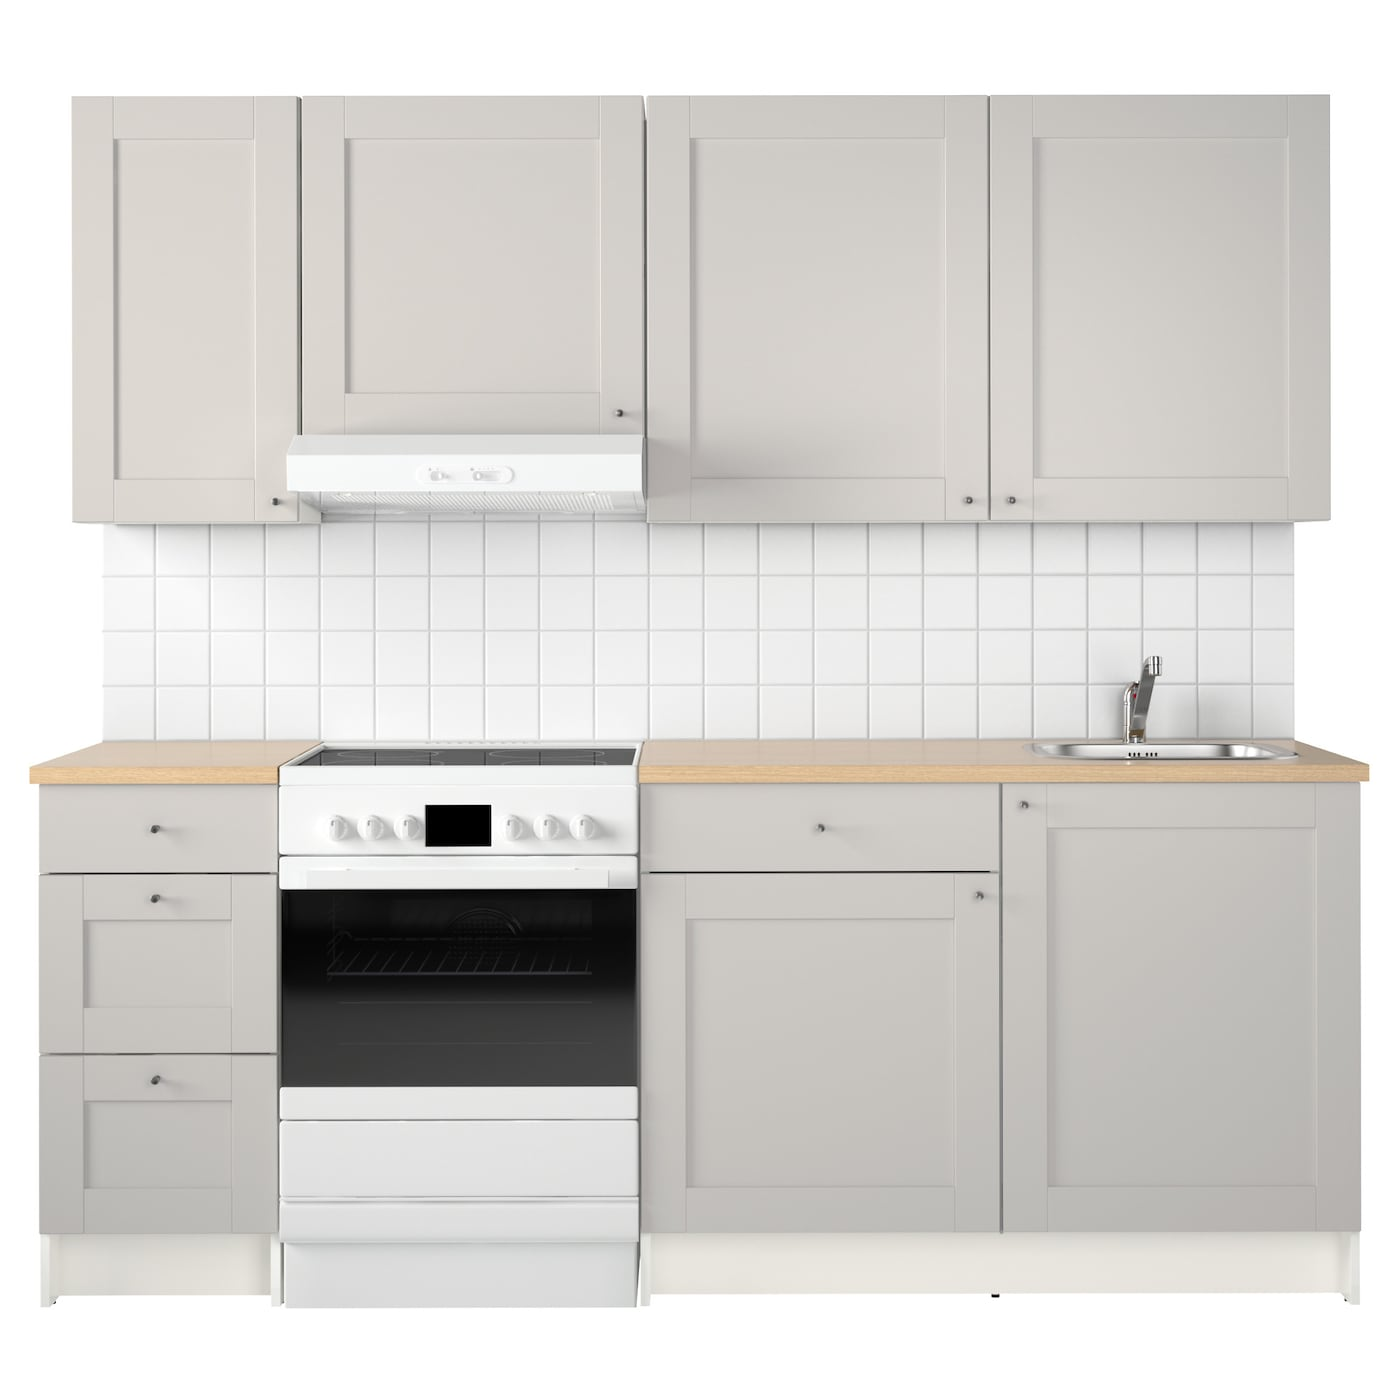 knoxhult kitchen grey 220x61x220 cm ikea. Black Bedroom Furniture Sets. Home Design Ideas